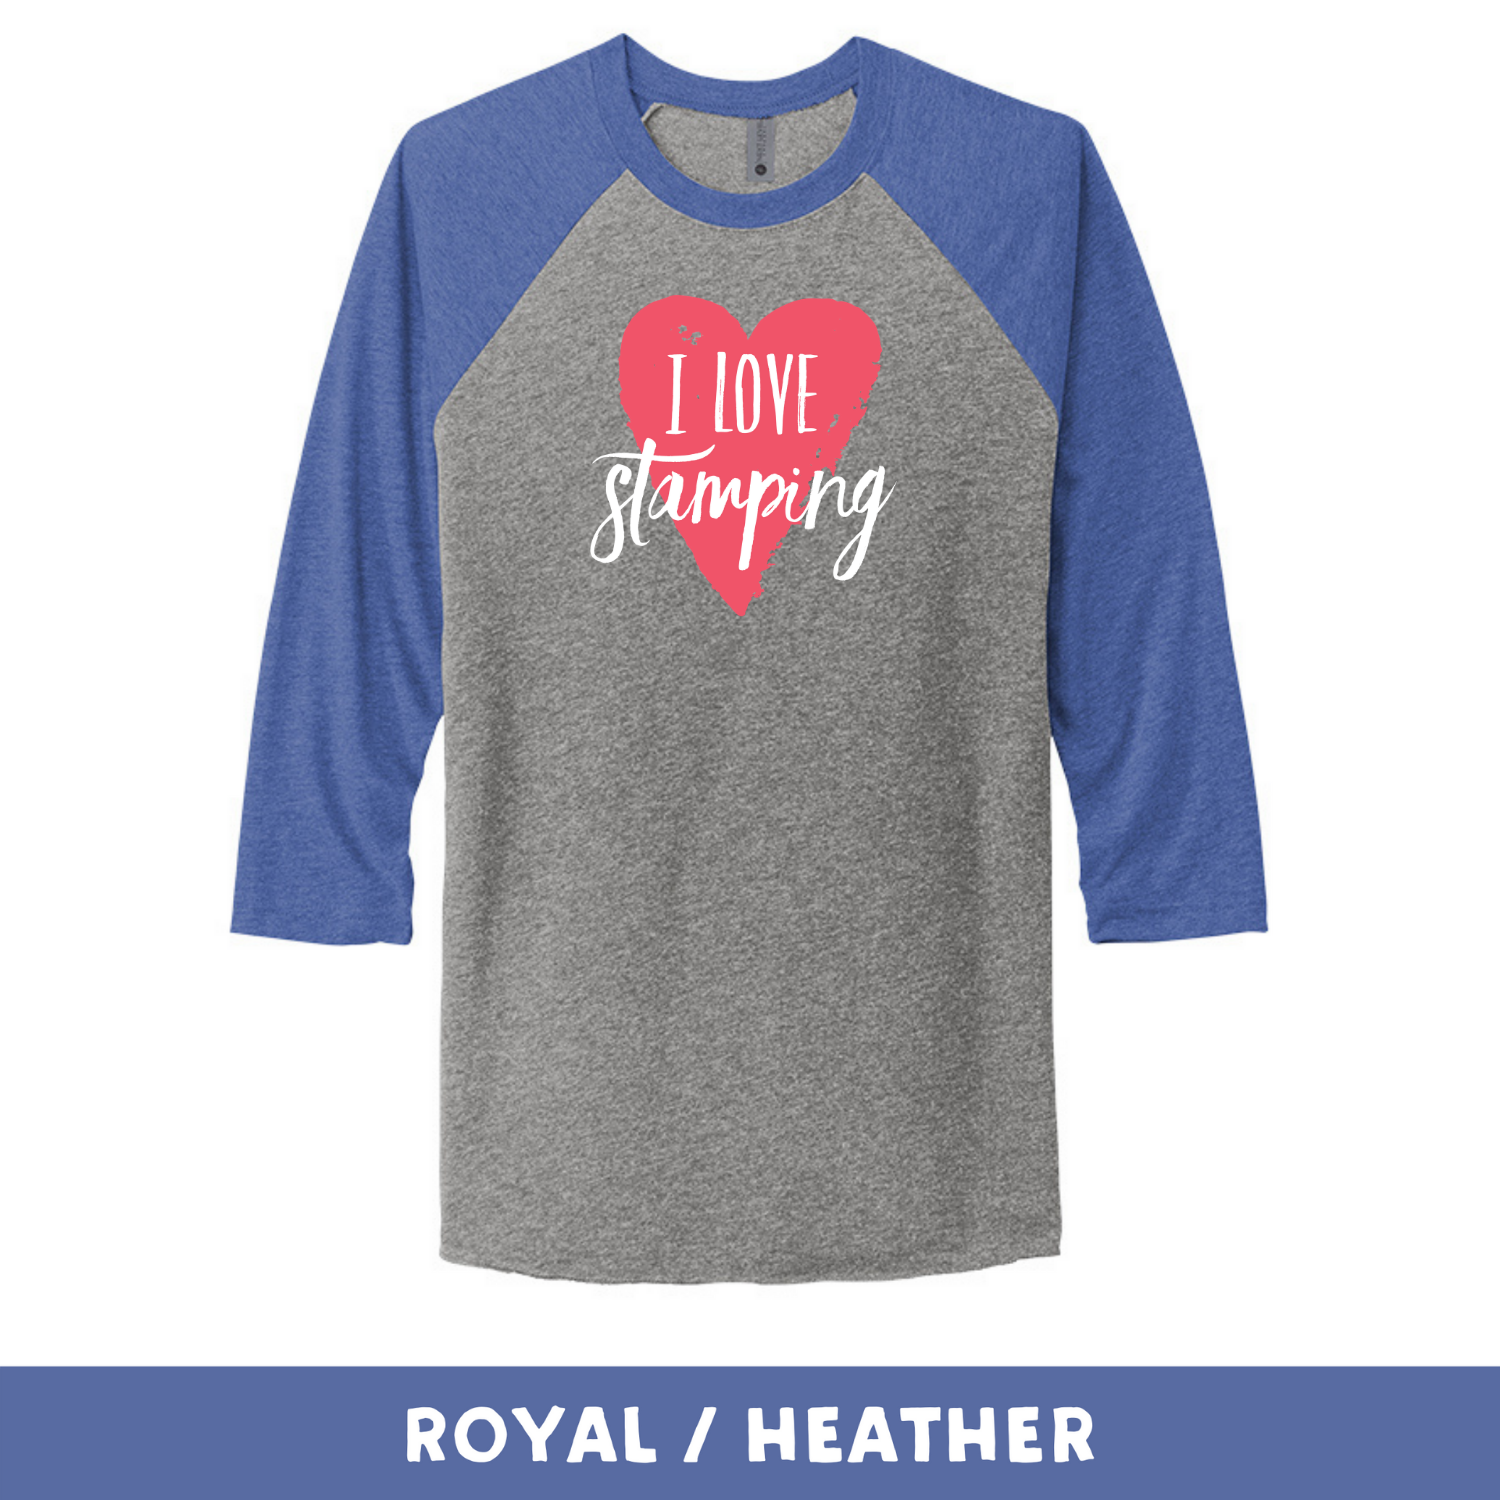 Royal Heather - Unisex Tri-Blend 3/4 Sleeve Raglan Tee - I Love Stamping